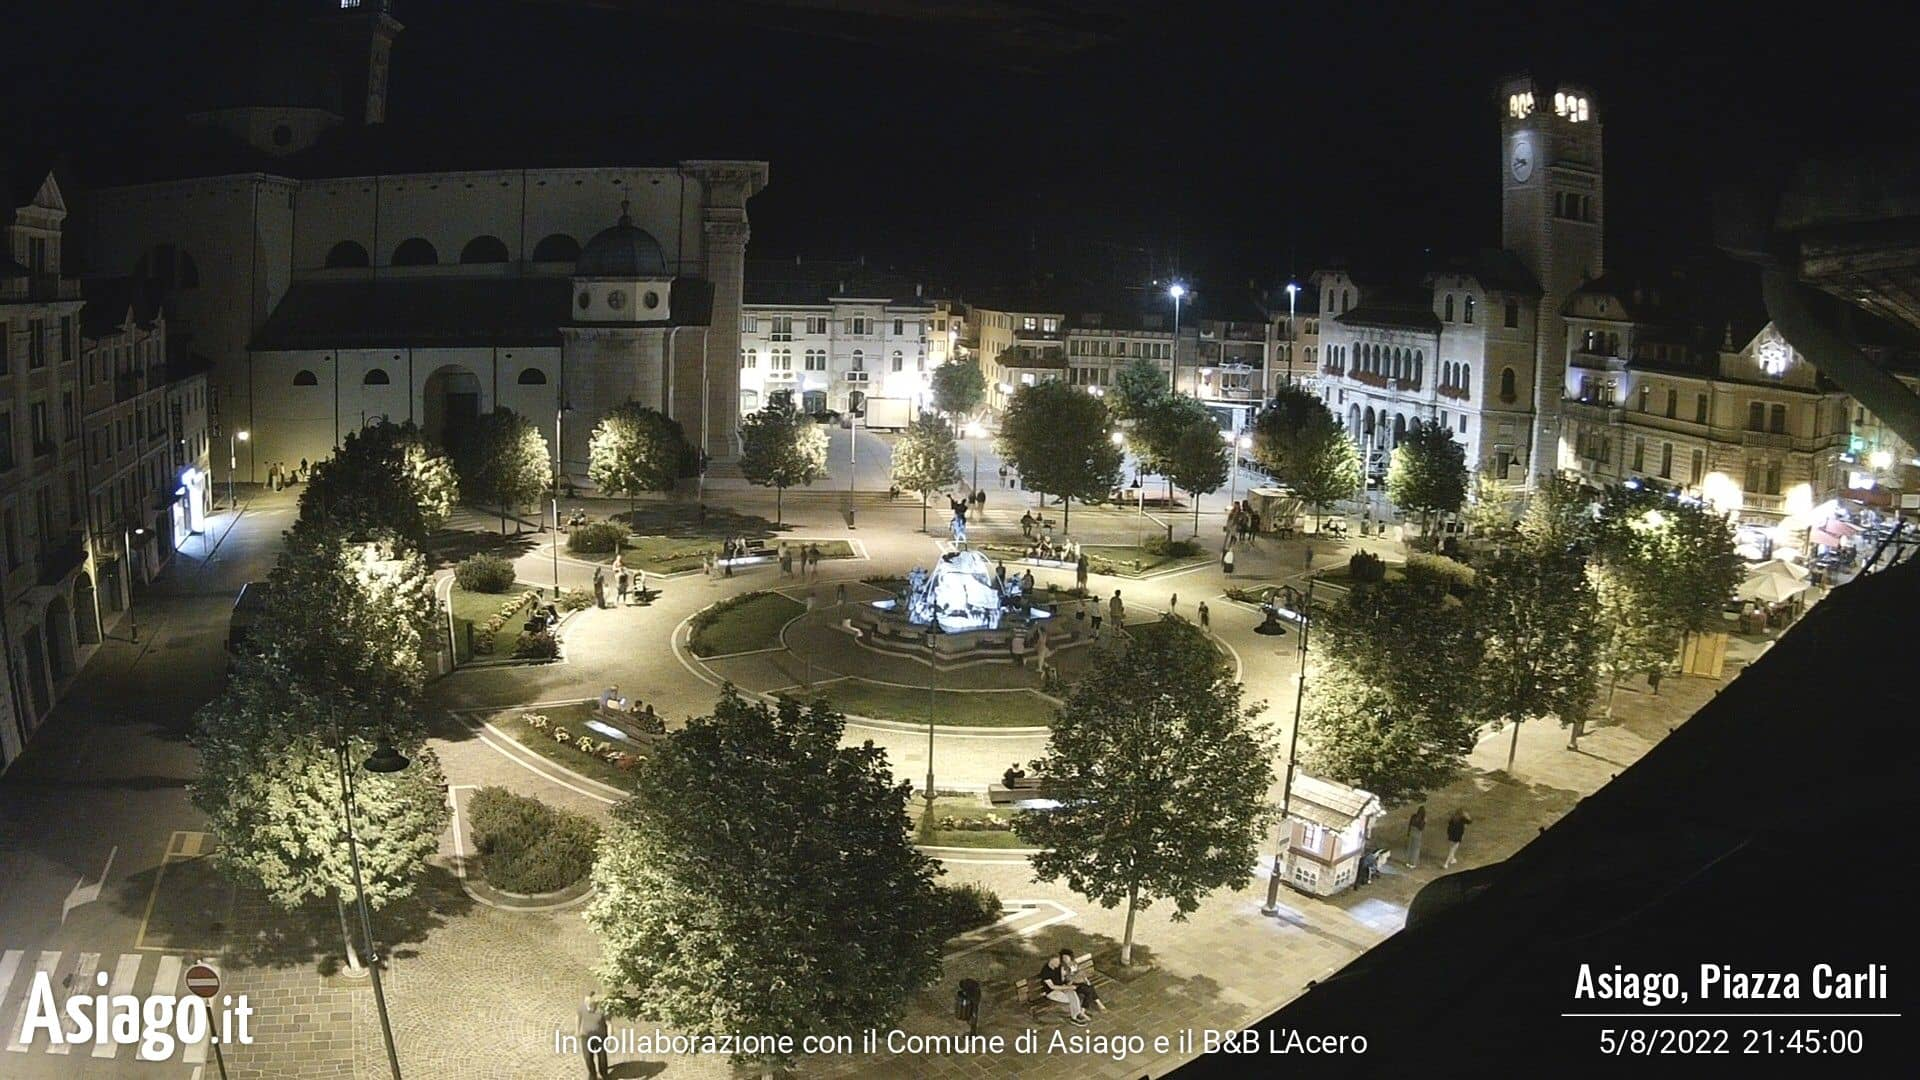 Webcam Asiago, Piazza Giovanni Carli - Asiago.it